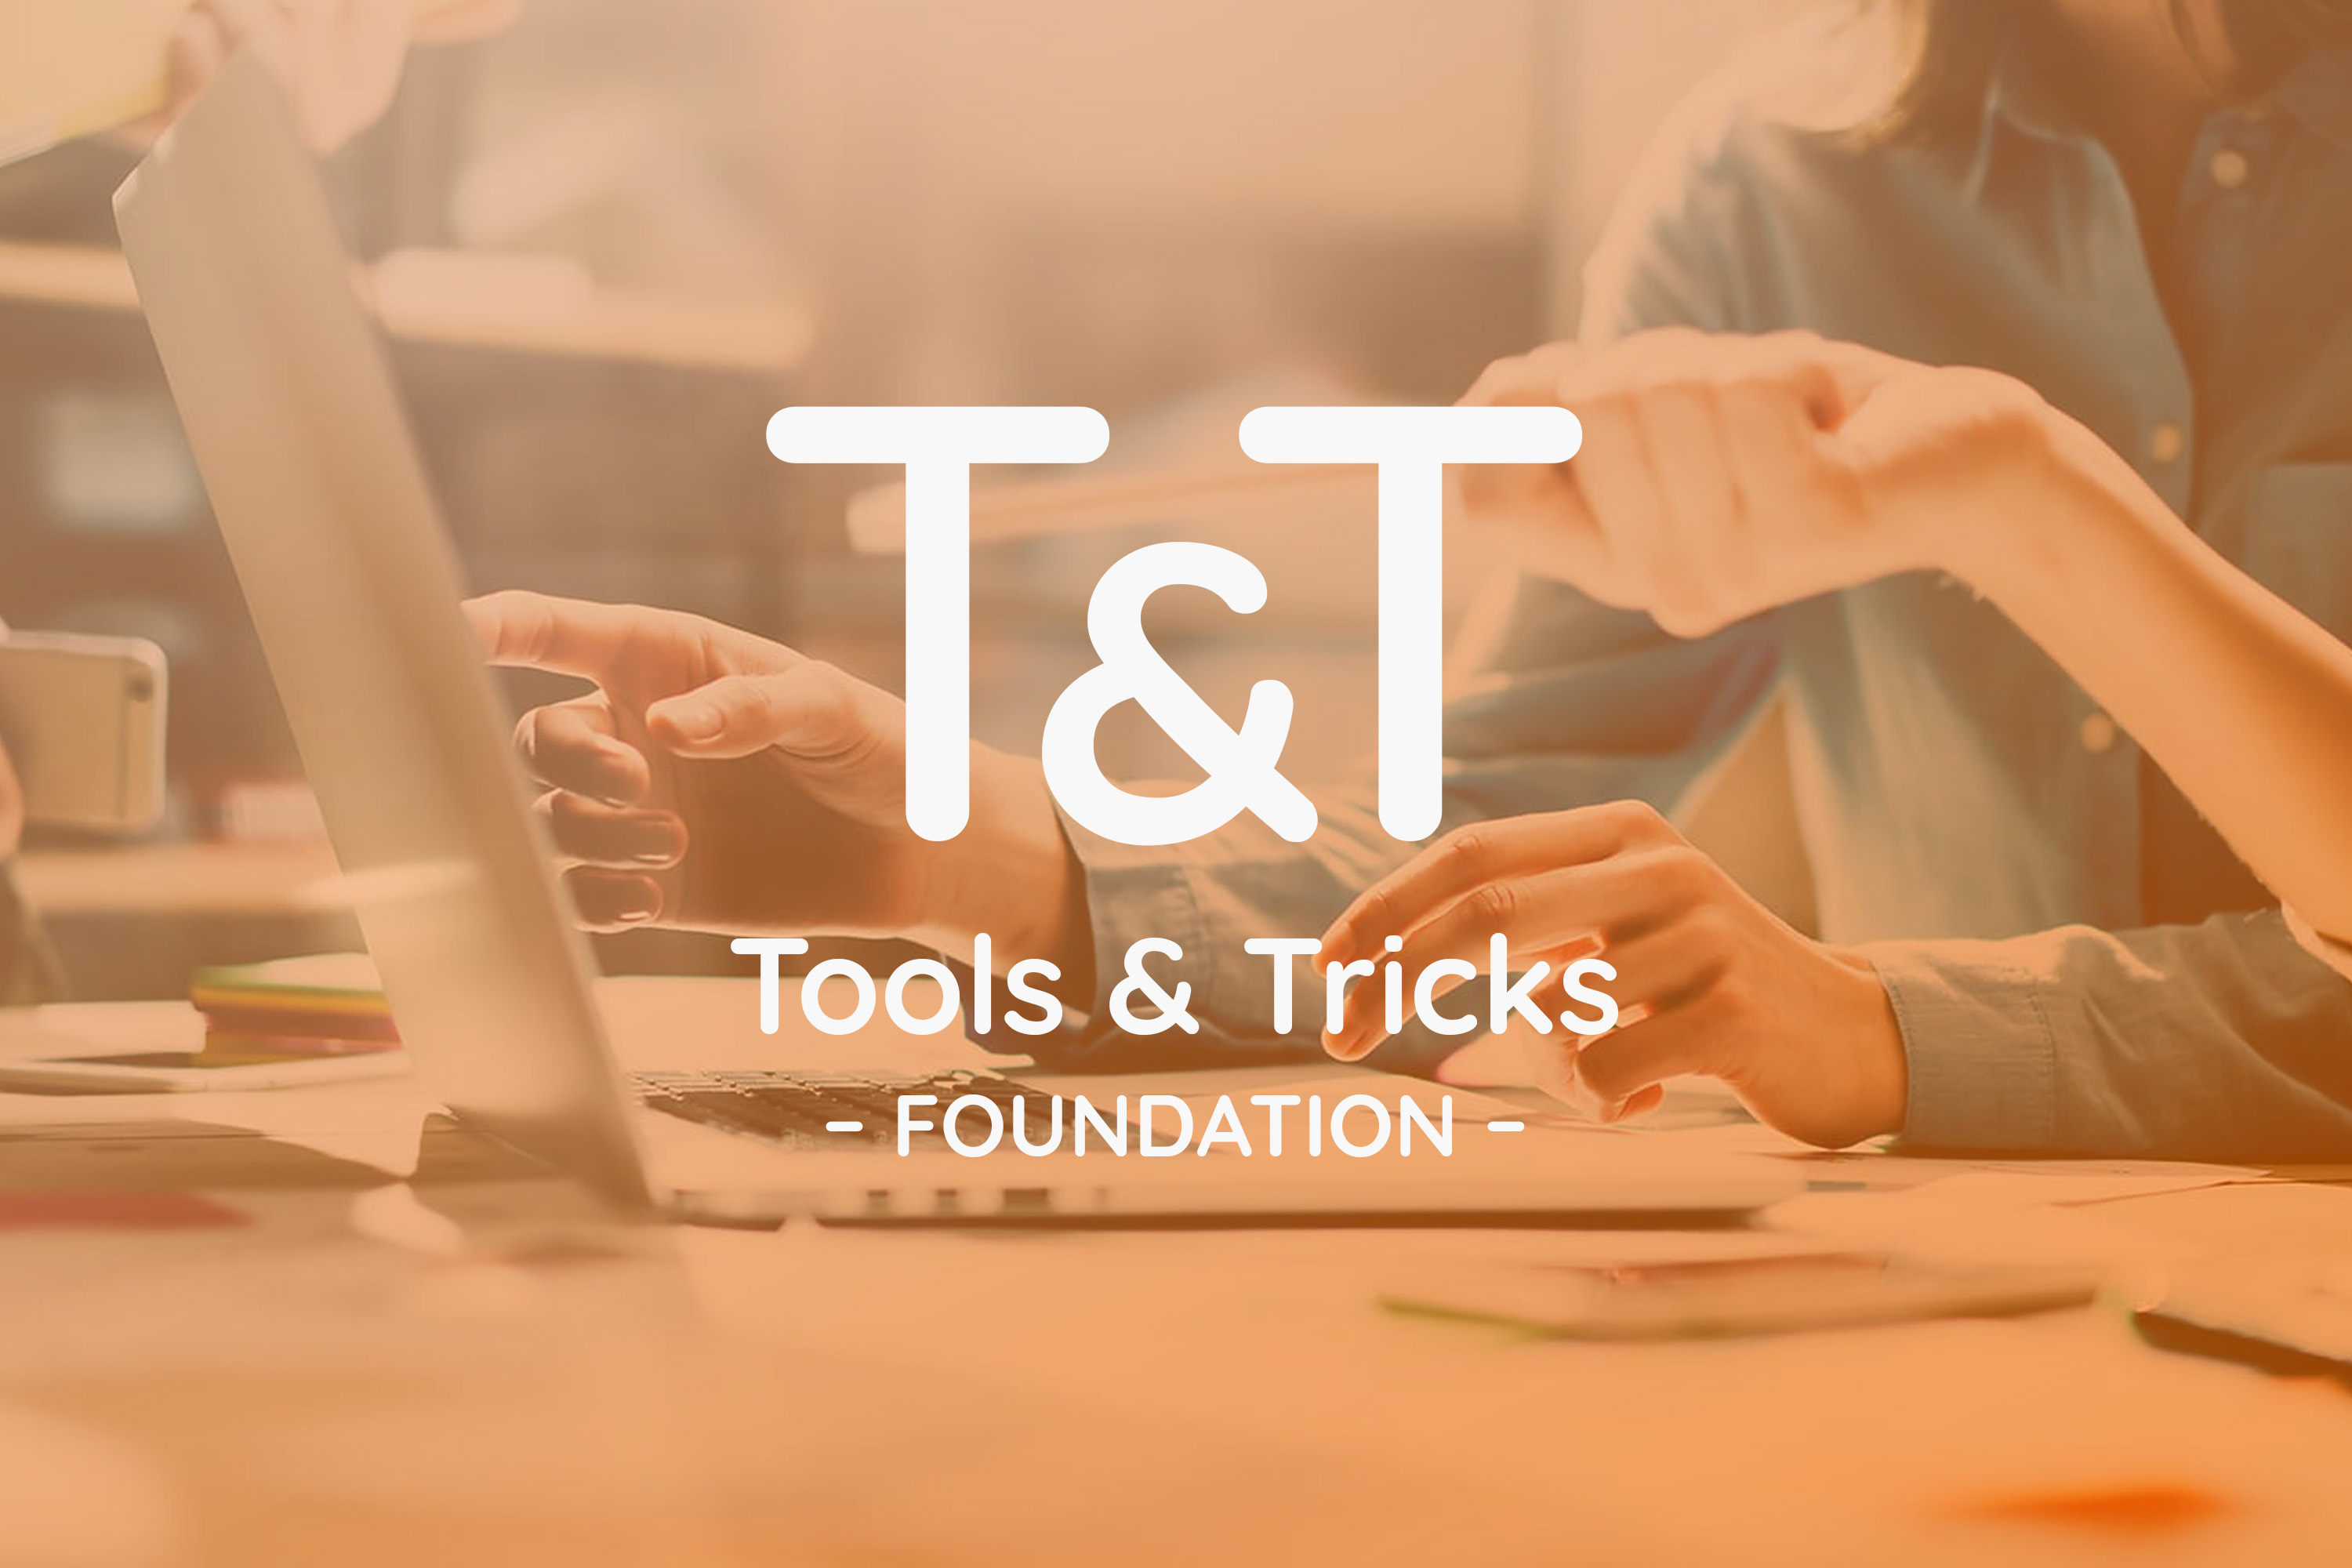 T&T FOUNDATION